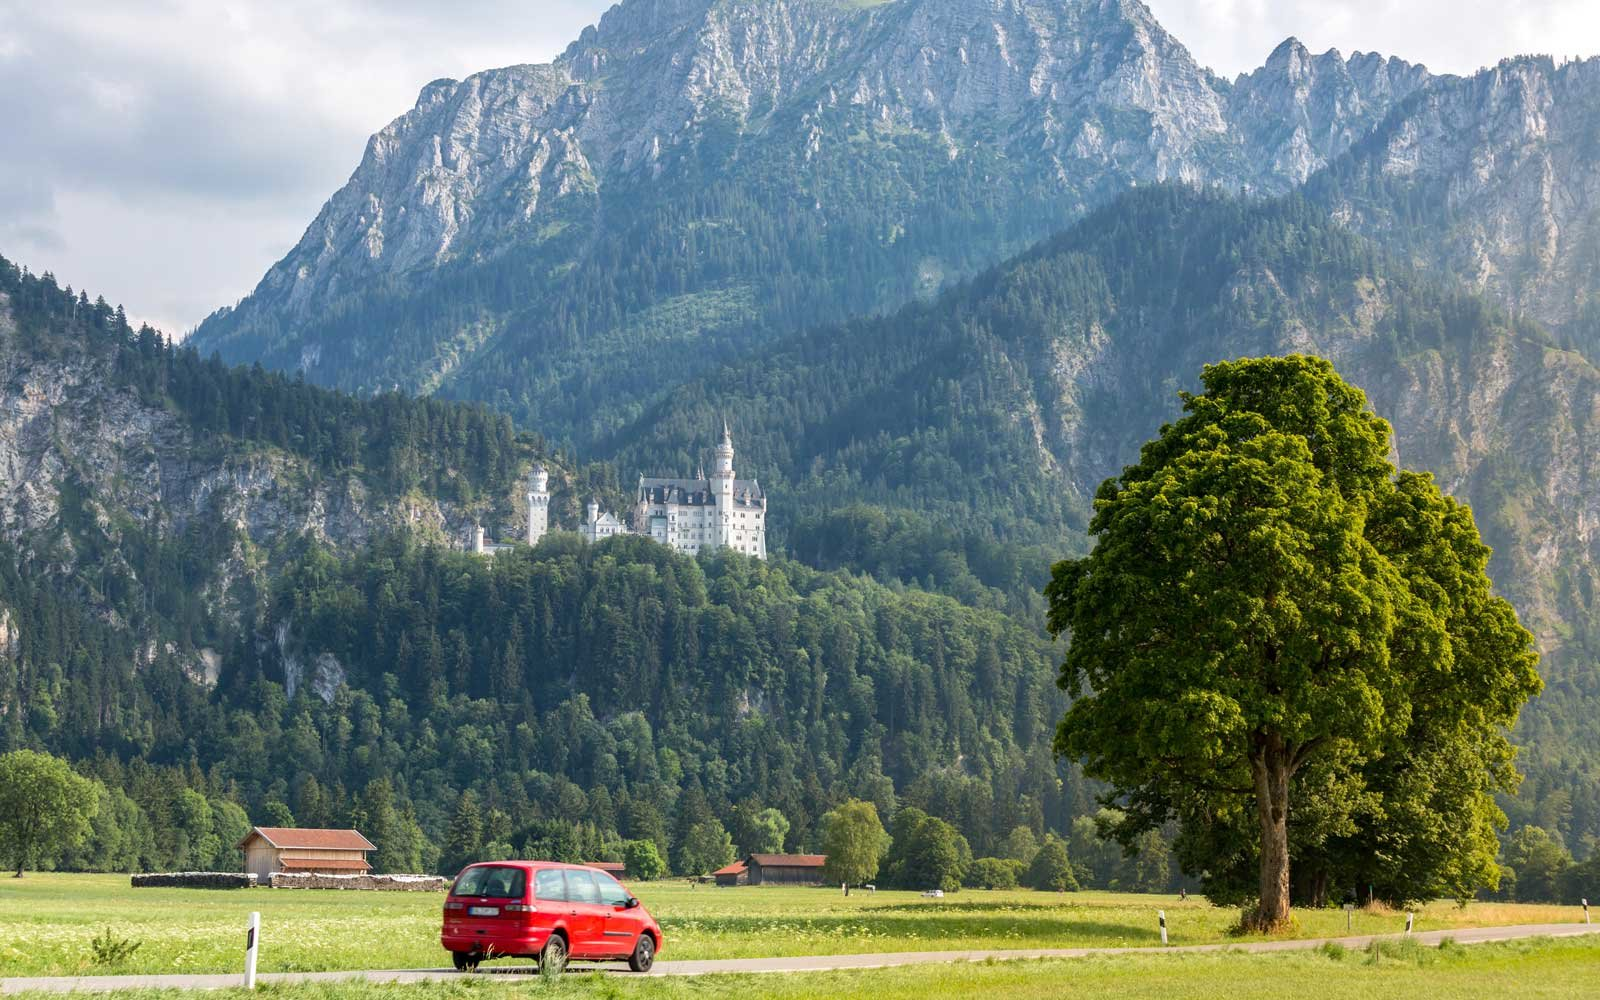 Transportation from Munich to Neuschwanstein Castle